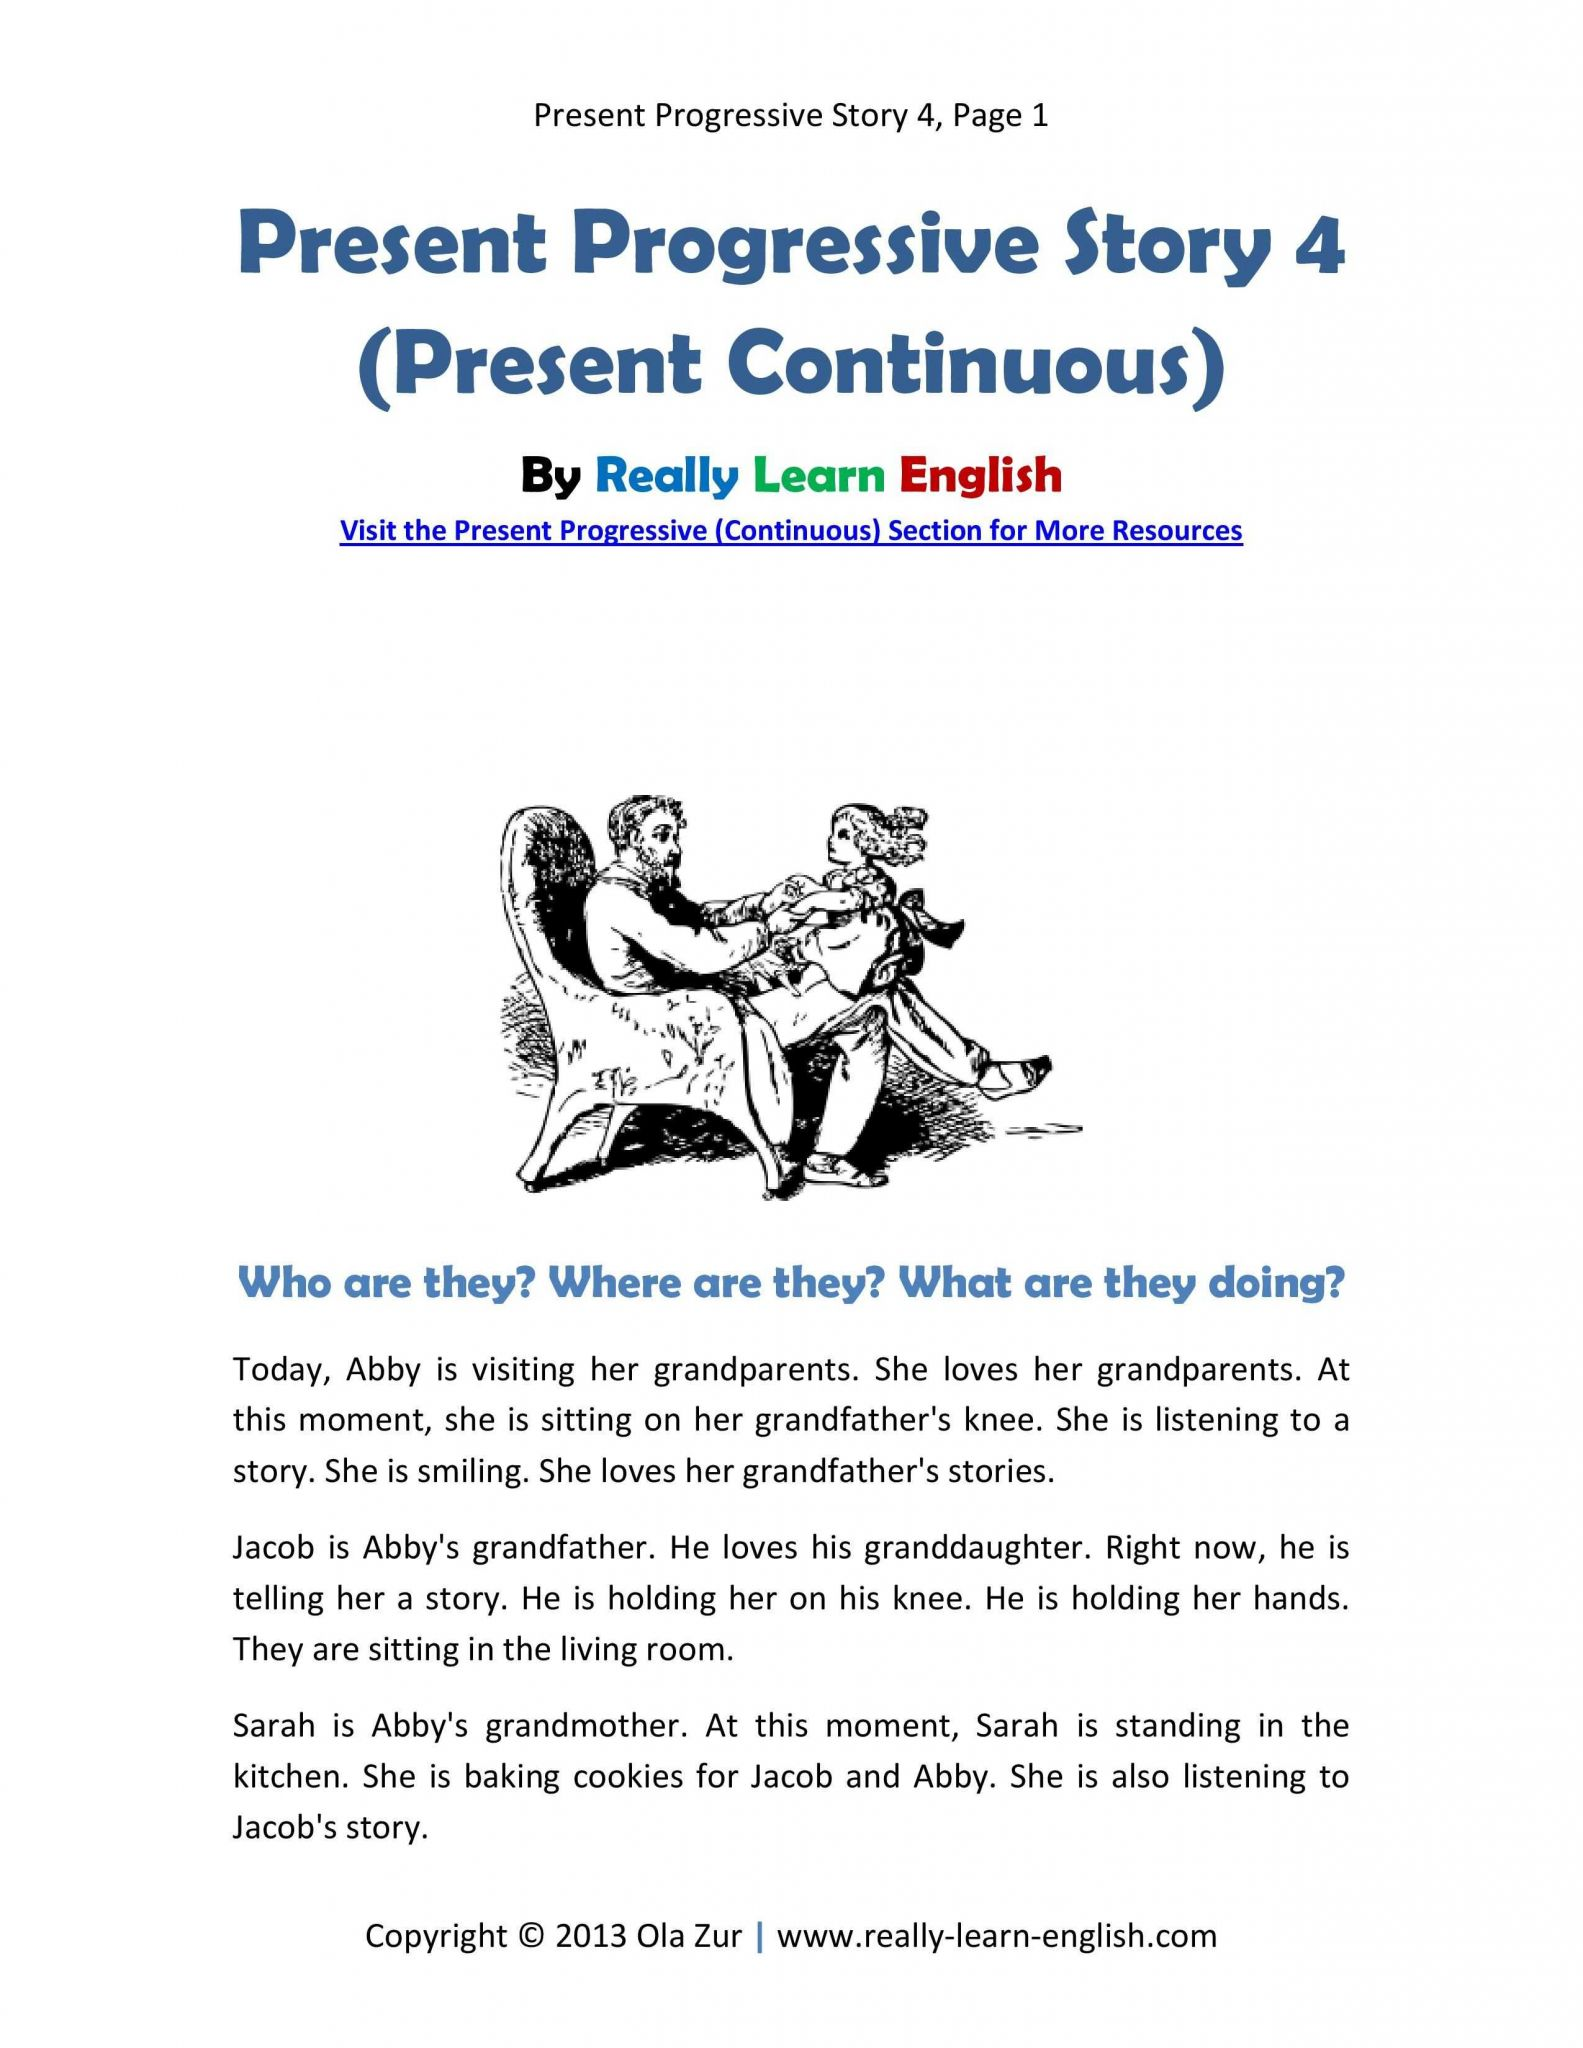 Bullying Worksheets Pdf Along with English Esl Story In the Present Progressive Tense Printable Story